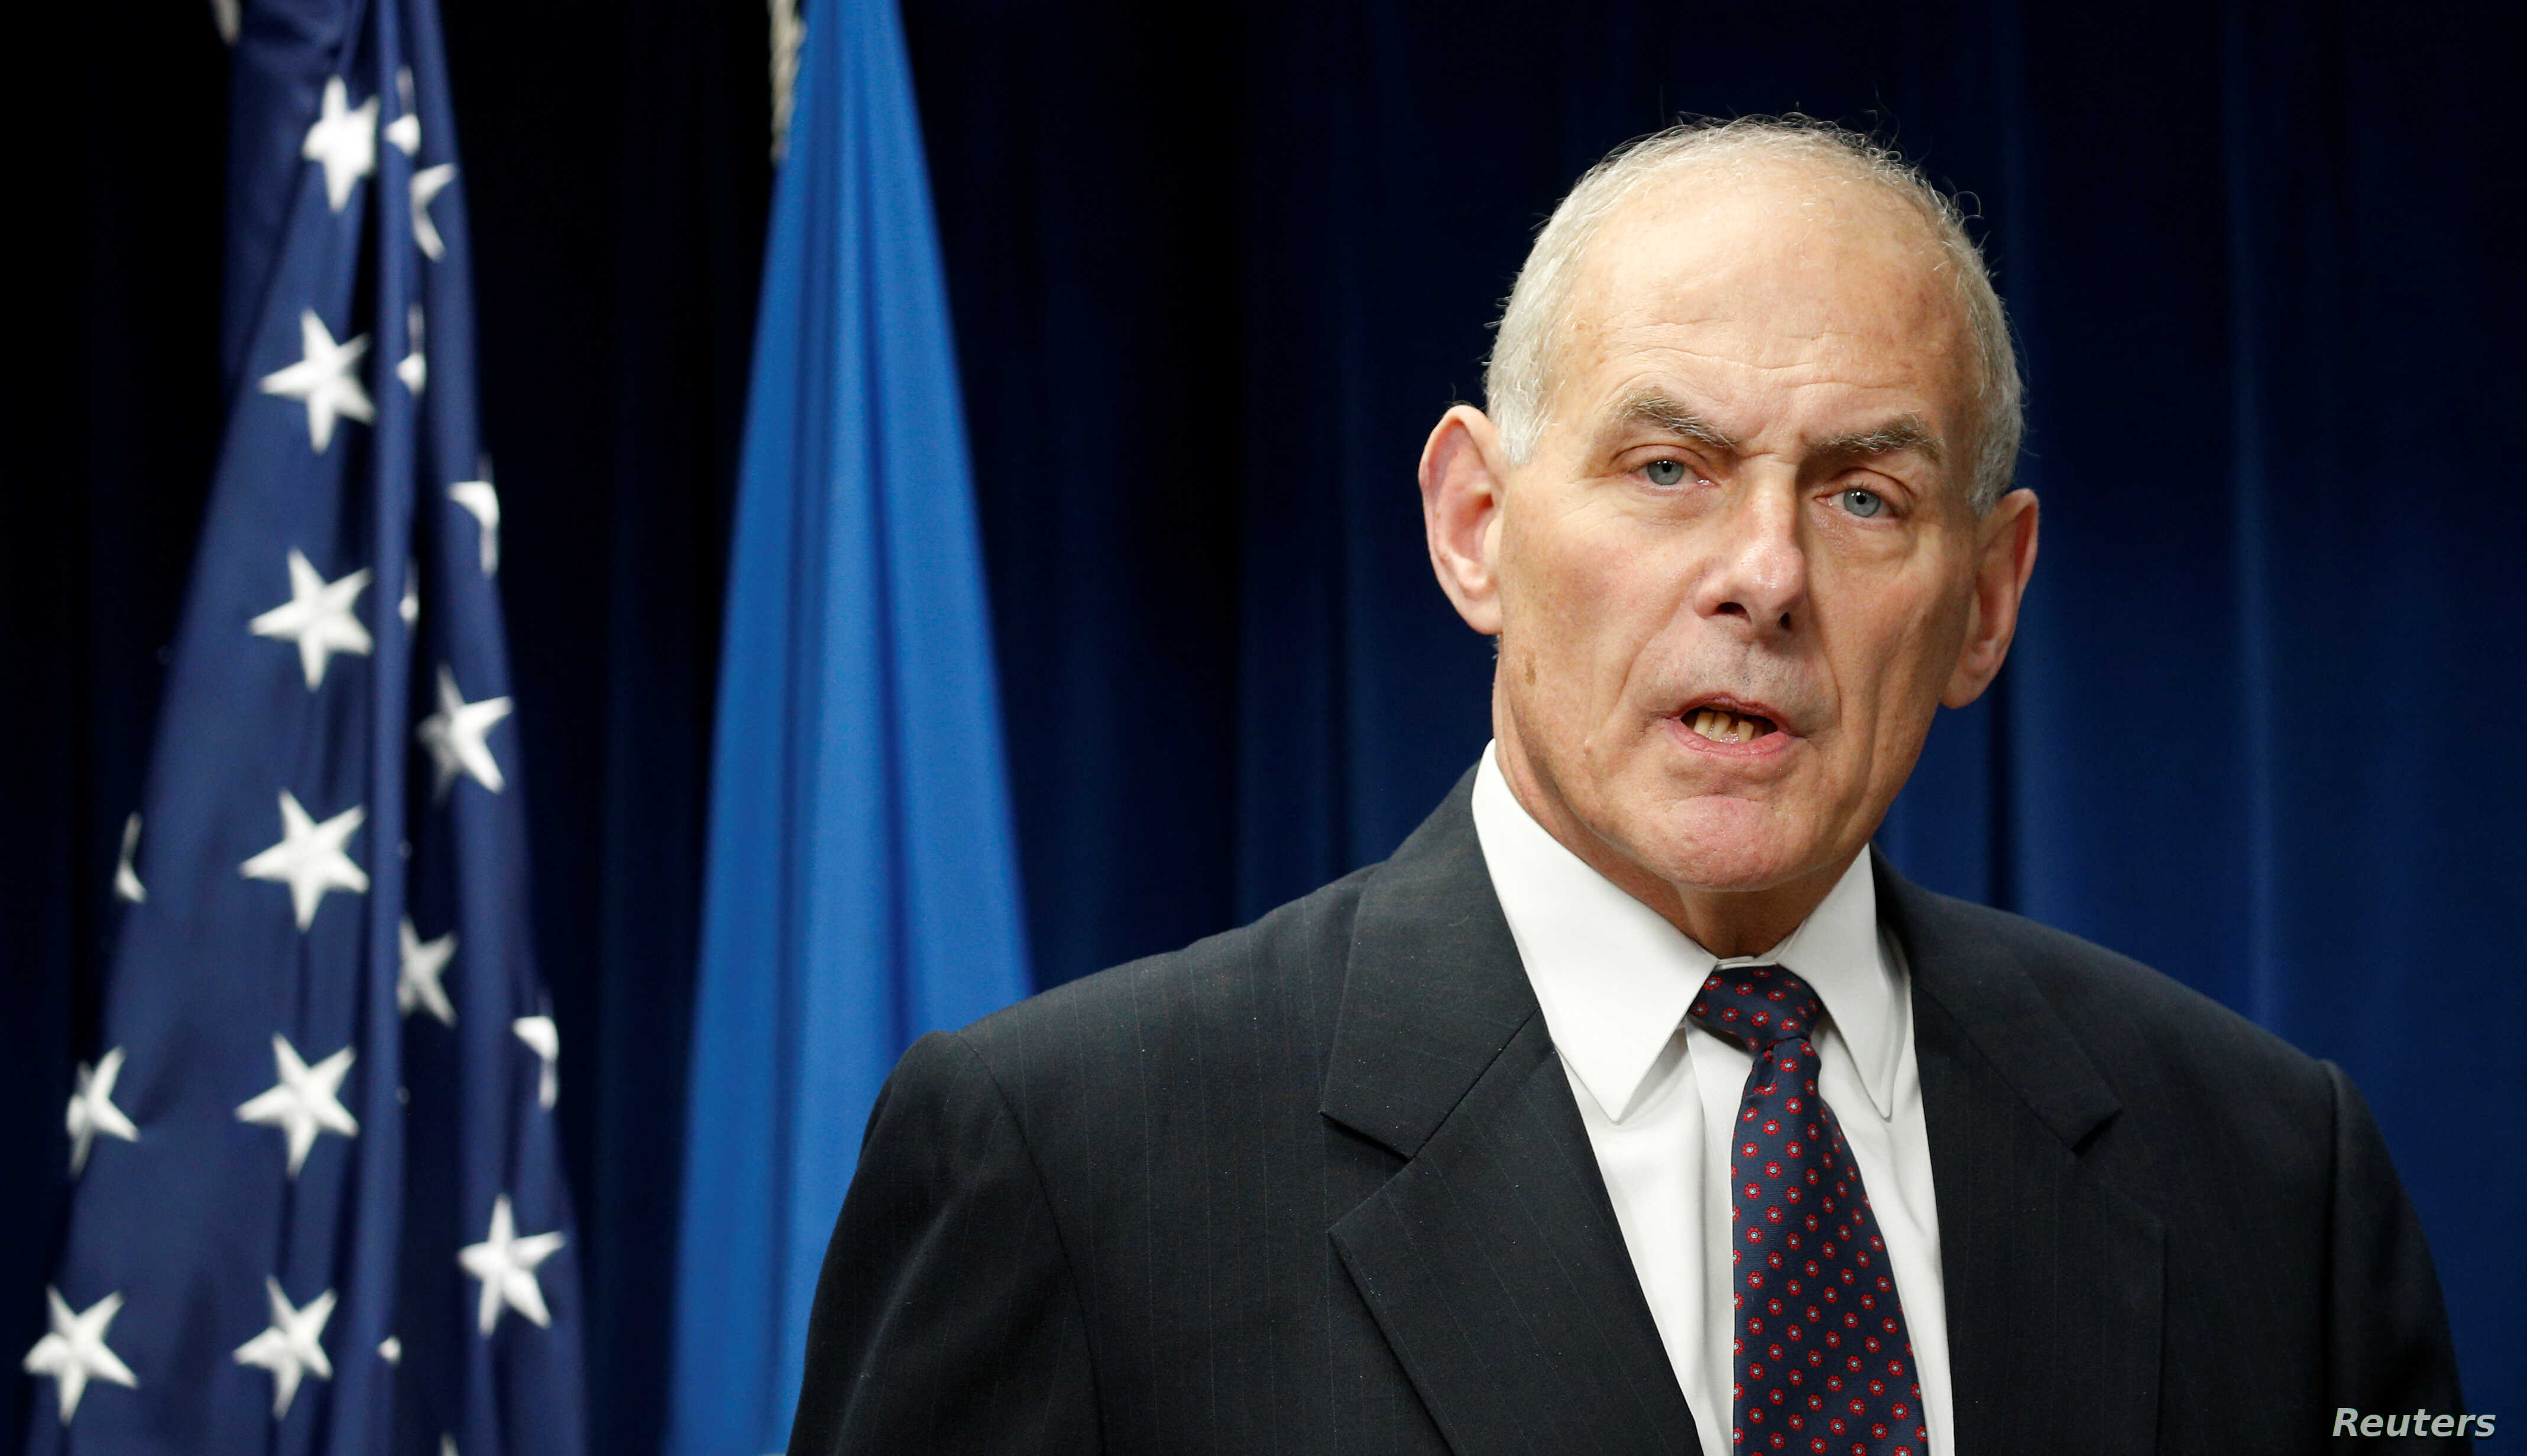 Homeland Security Secretary John Kelly delivers remarks on issues related to visas and travel after U.S. President Donald Trump signed a new travel ban order in Washington, March 6, 2017.